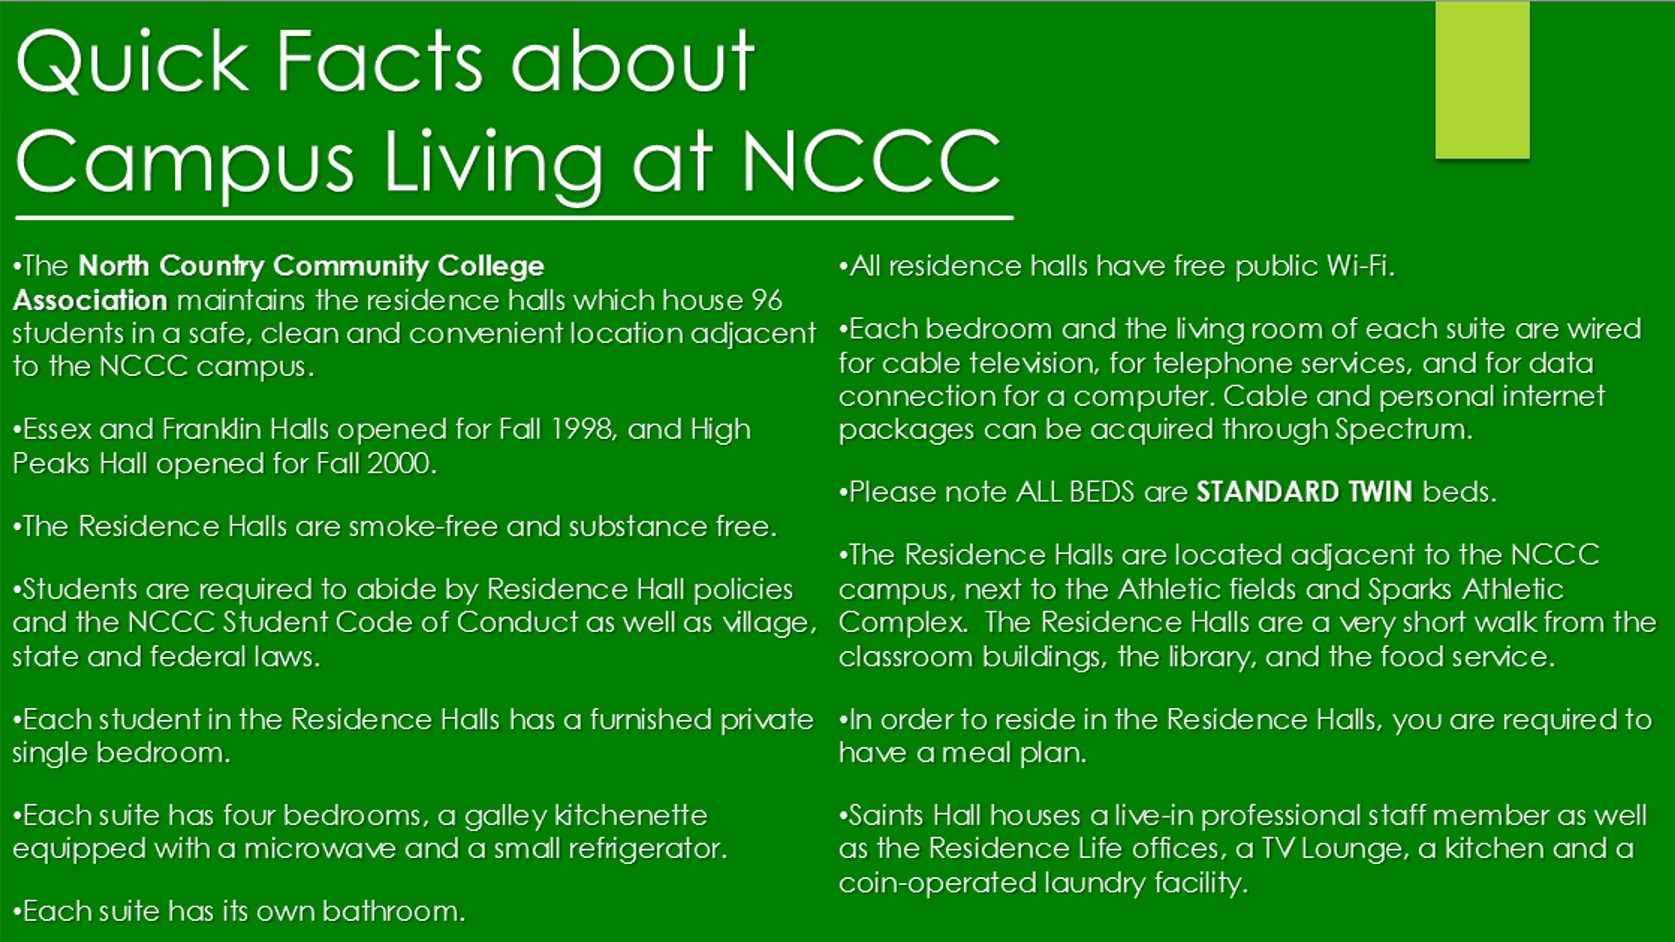 Quick Facts about Campus Living